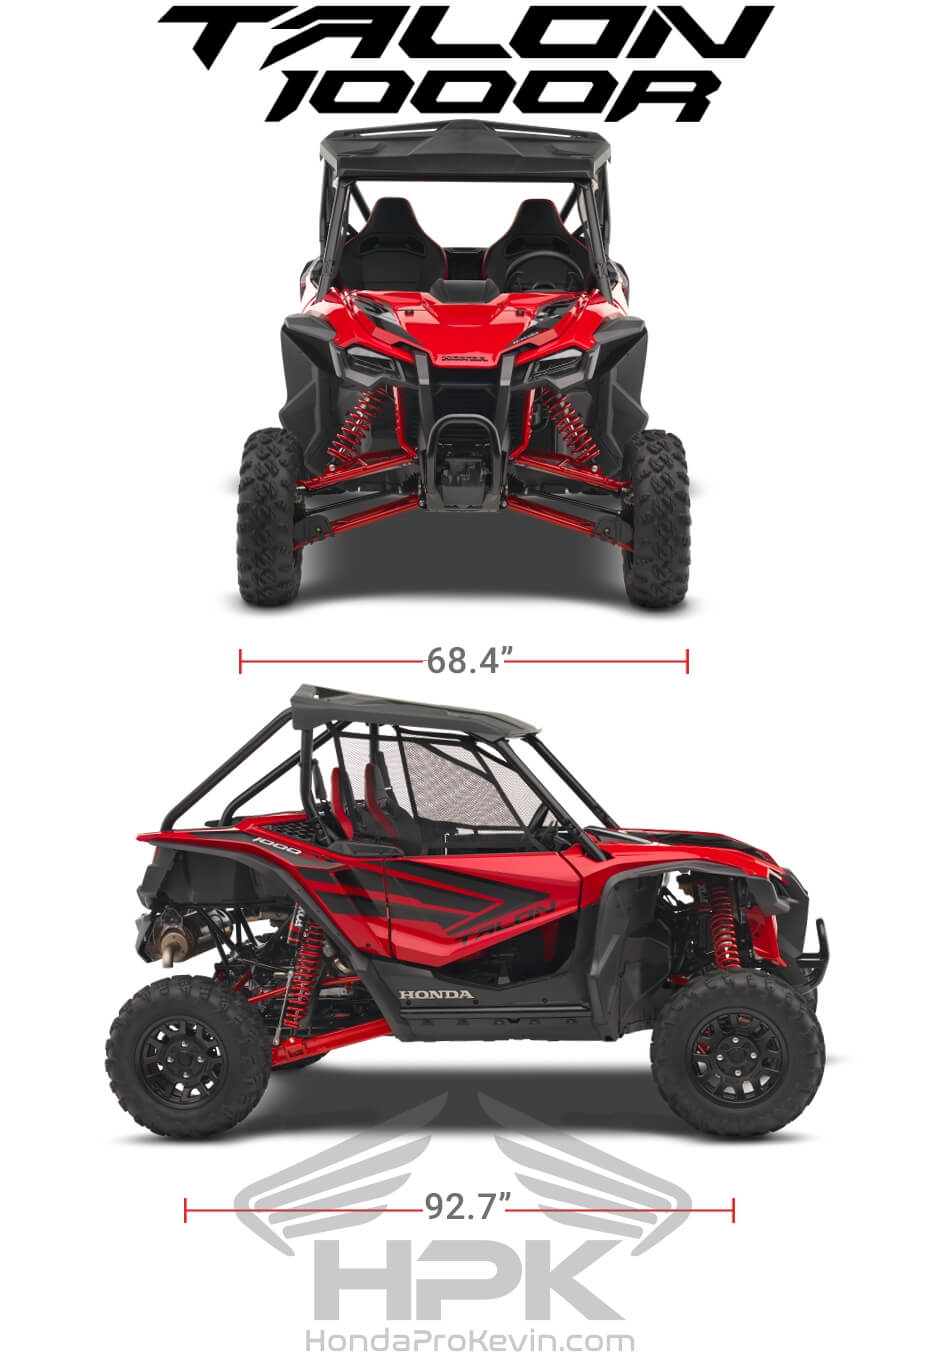 Honda TALON 1000R Dimensions: Width, Length, Wheelbase Specs | TALON 1000 R Sport SxS / UTV / Side by Side ATV